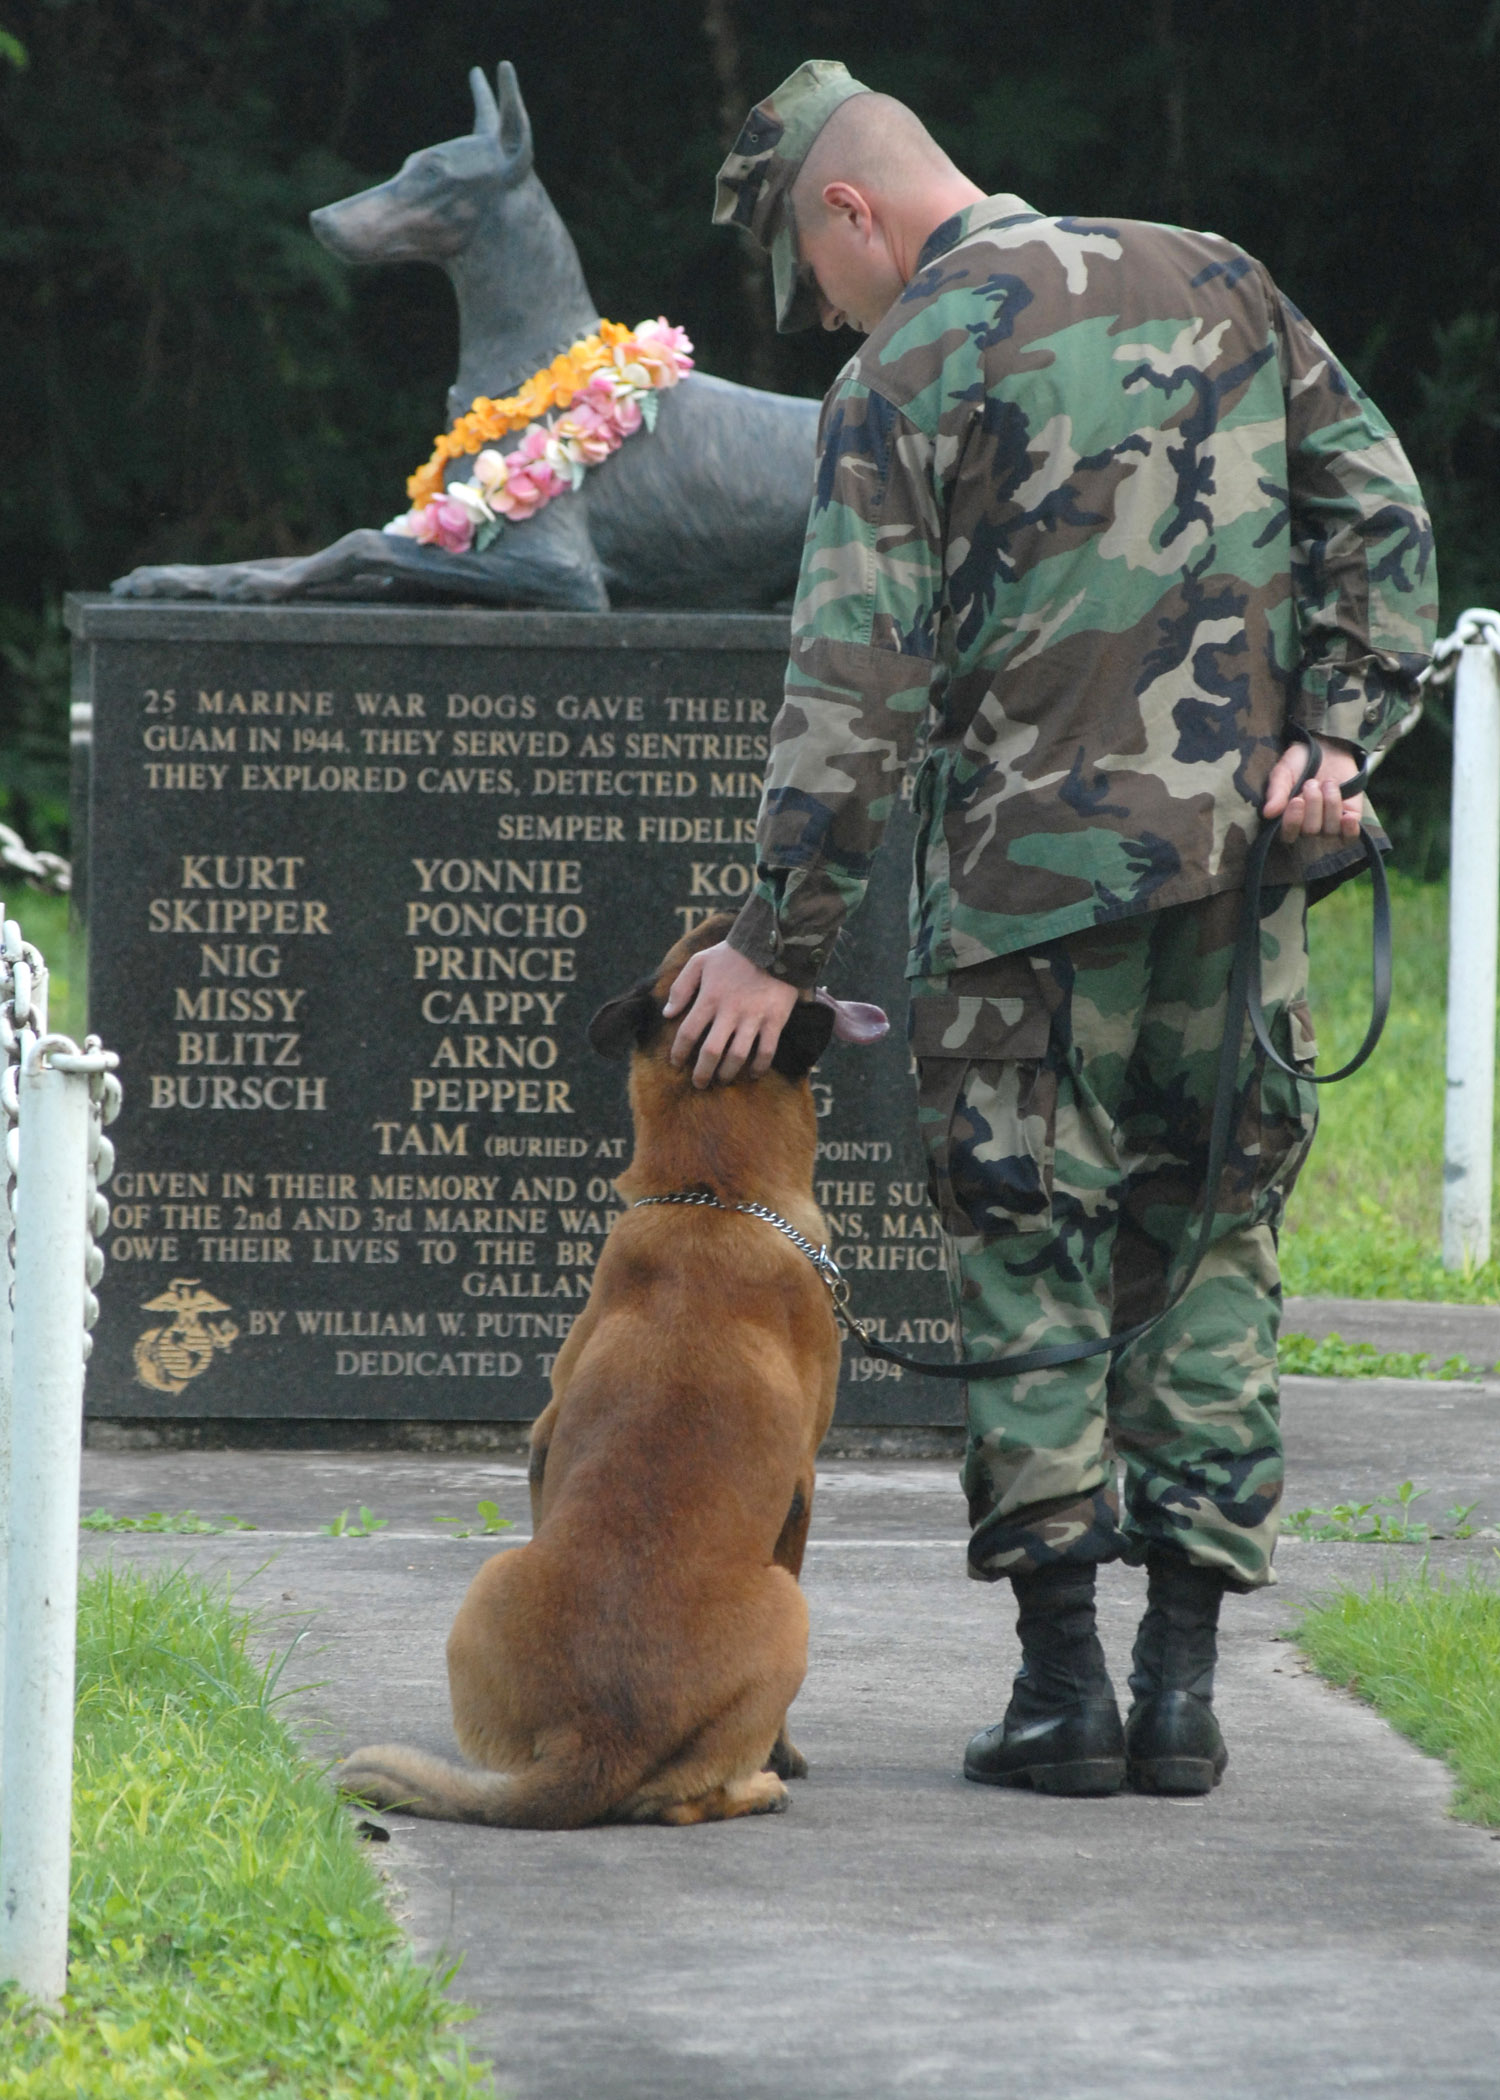 us_navy_061027-n-9662l-048_petty_officer_2nd_class_blake_soller_a_military_working_dog_mwd_handler_pets_the_head_of_his_mwd_rico_at_the_war_dog_cemetery_located_on_naval_base_guam.jpg